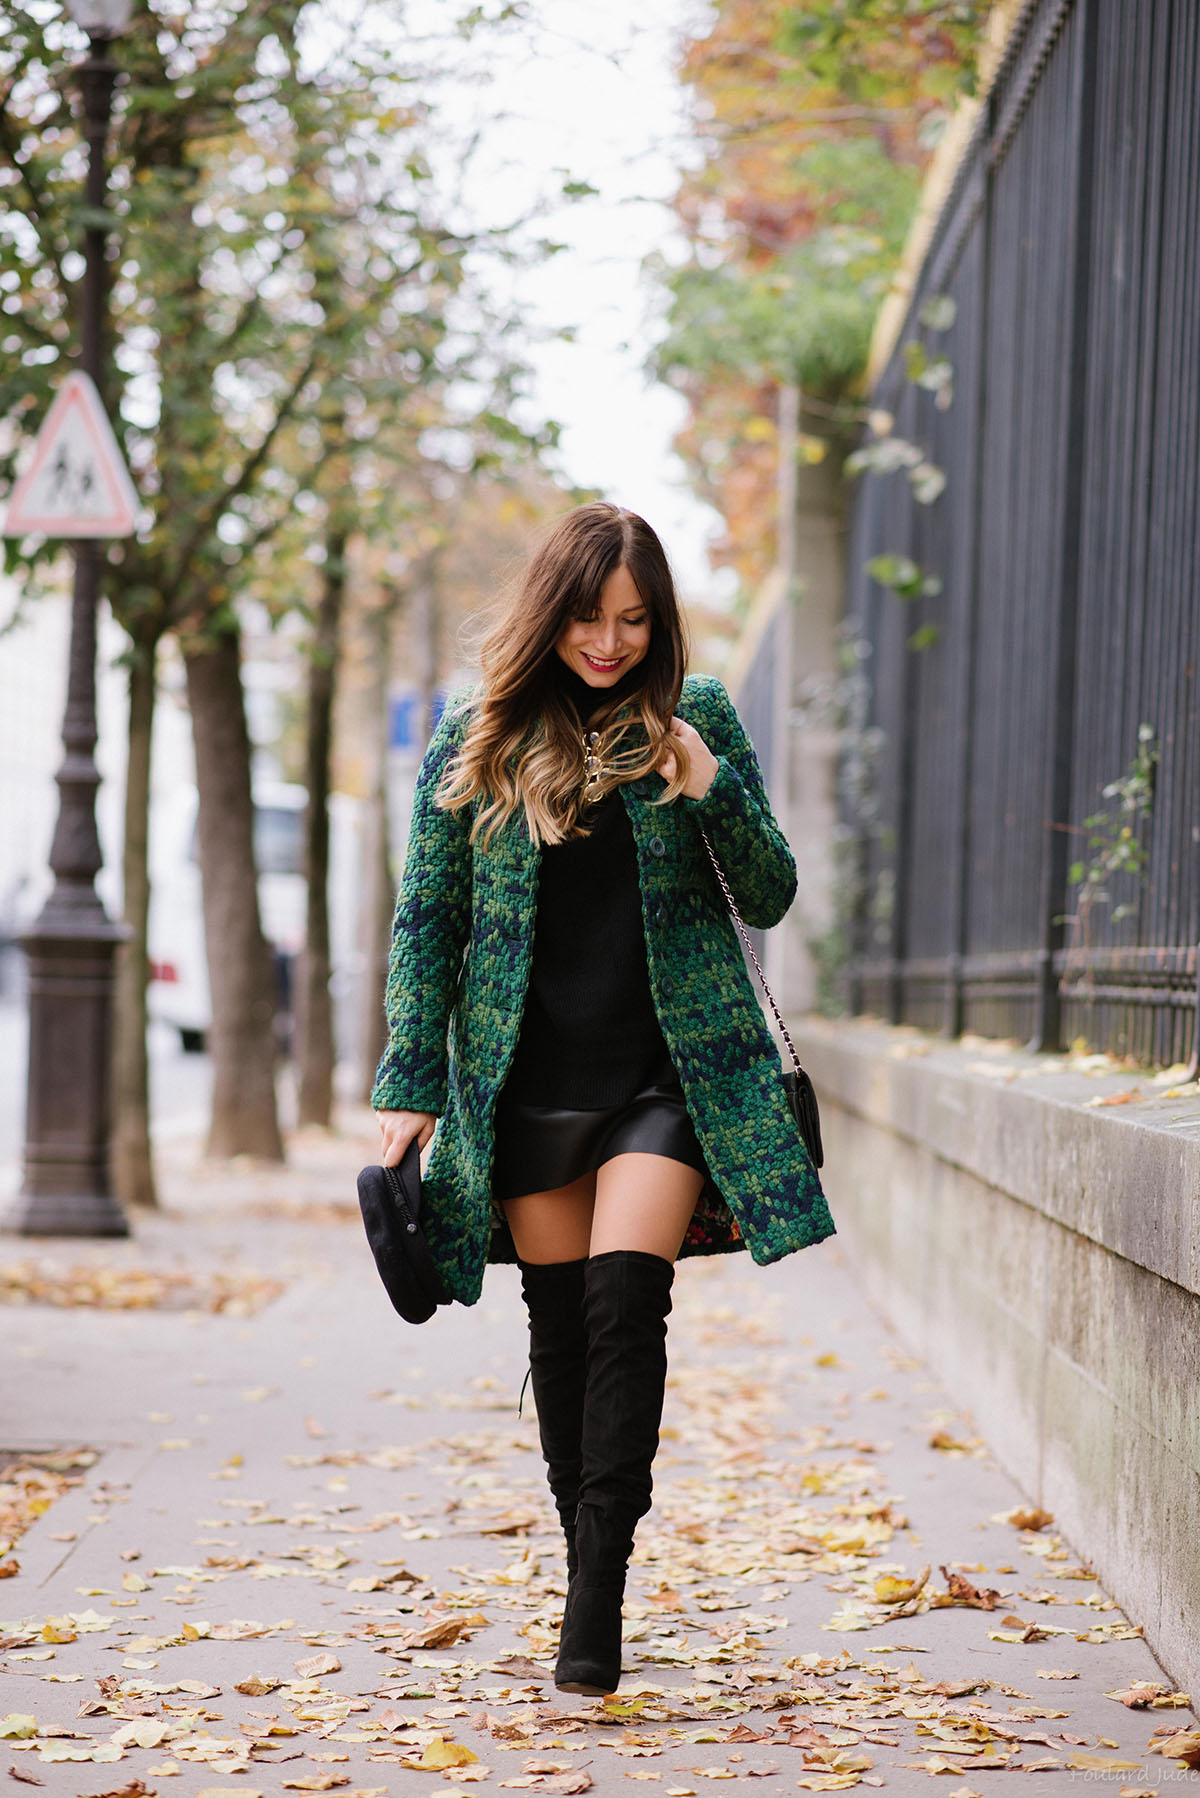 chic-outfit-leather-skirt-sweater-and-over-the-knees-boots